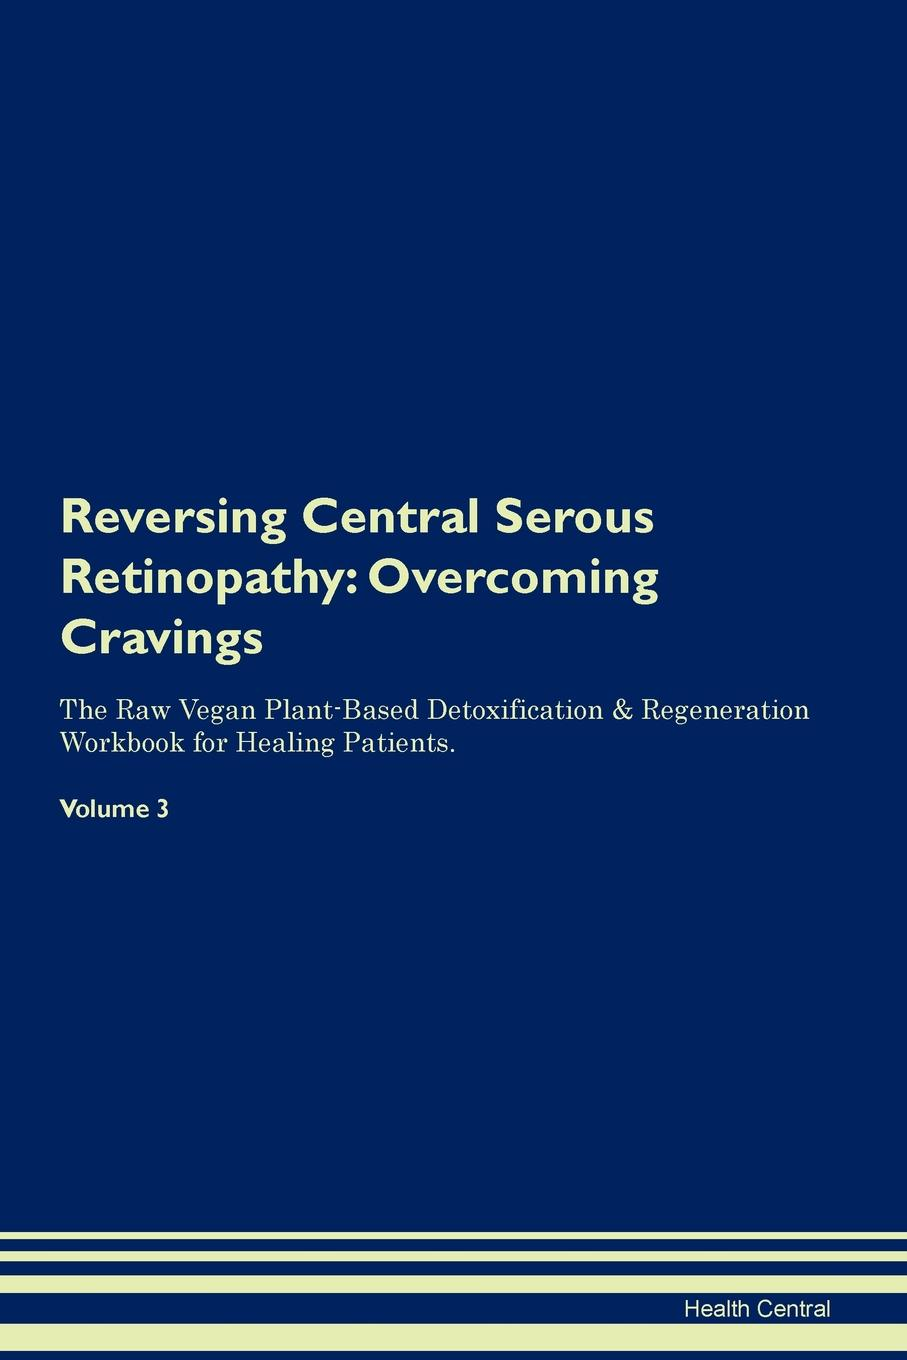 Фото - Health Central Reversing Central Serous Retinopathy. Overcoming Cravings The Raw Vegan Plant-Based Detoxification & Regeneration Workbook for Healing Patients. Volume 3 health central reversing spinocerebellar ataxia overcoming cravings the raw vegan plant based detoxification